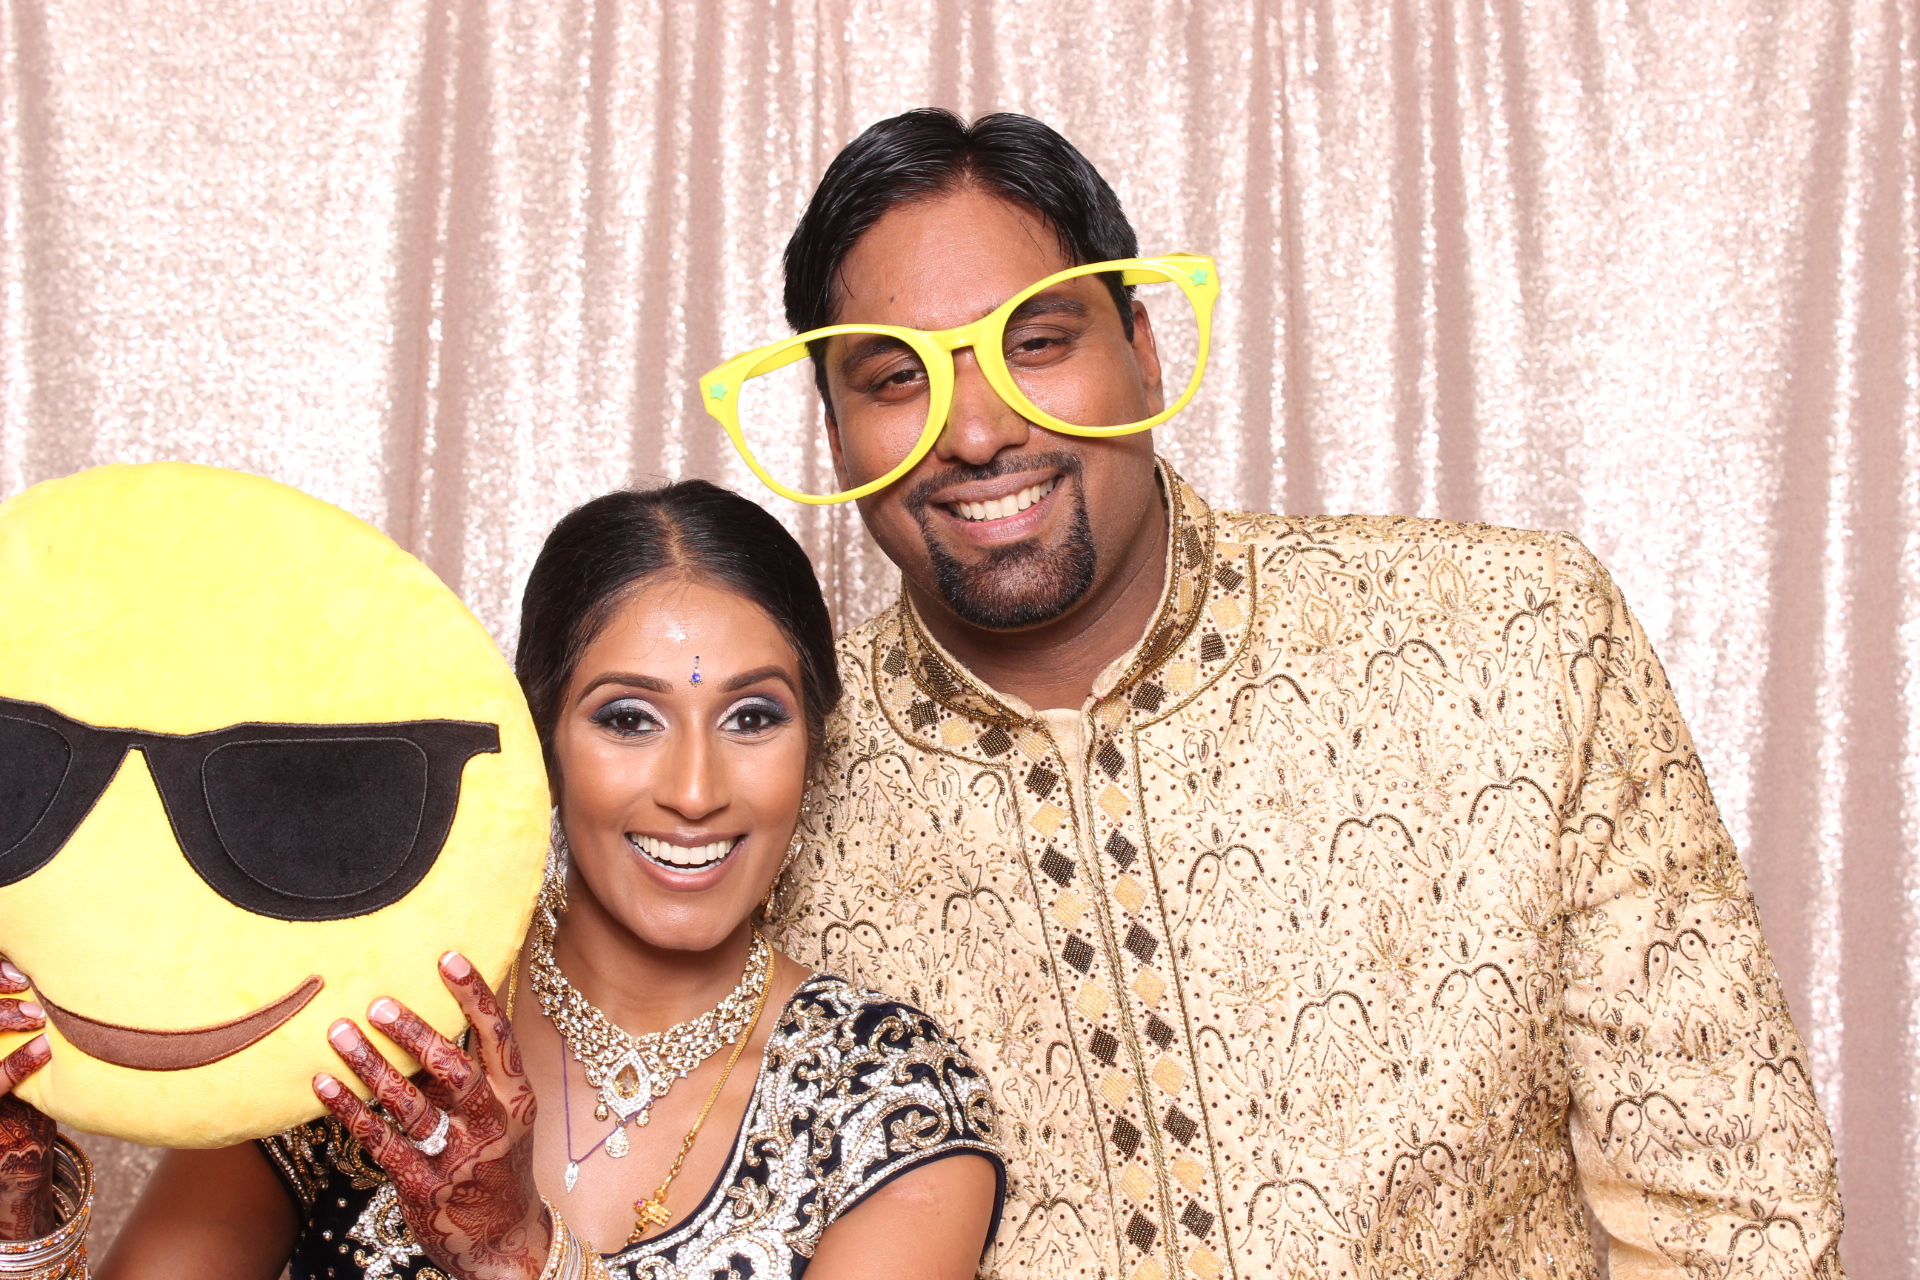 Indian Wedding Photo Booth Rental Boothie.jpg